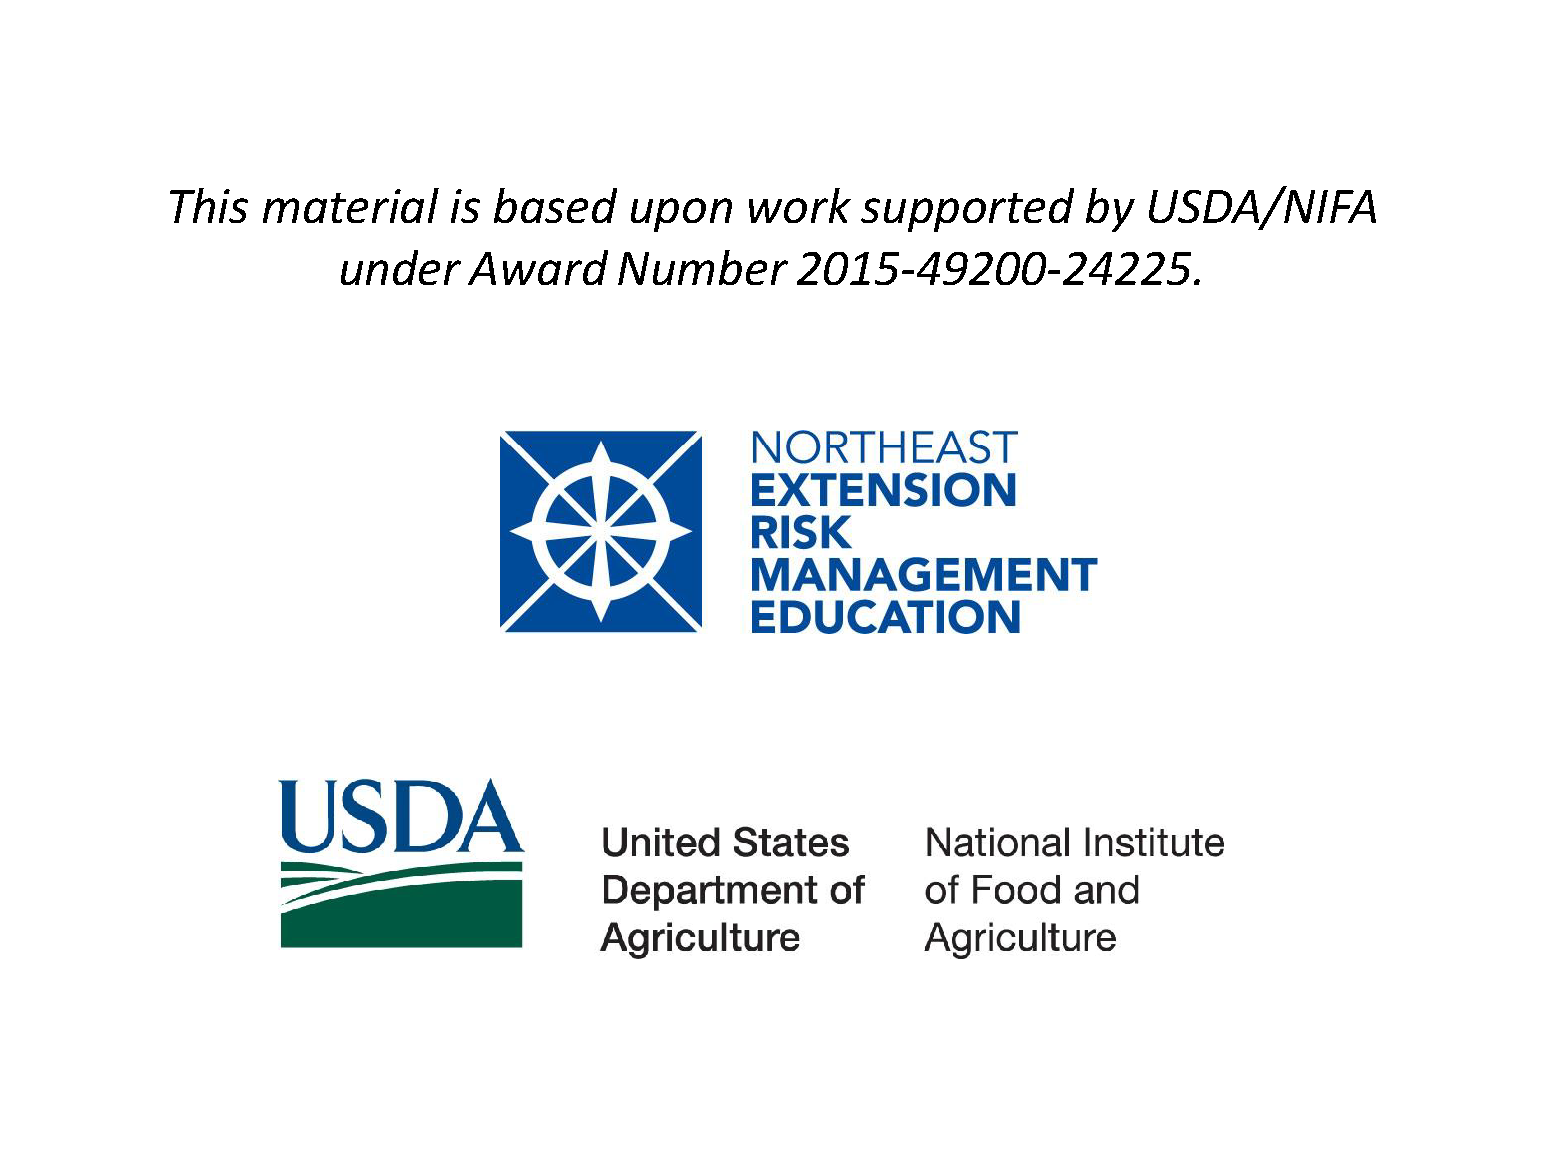 This material is based upon work supported by USDA/NIFA under Award Number 2015-49200-24225.